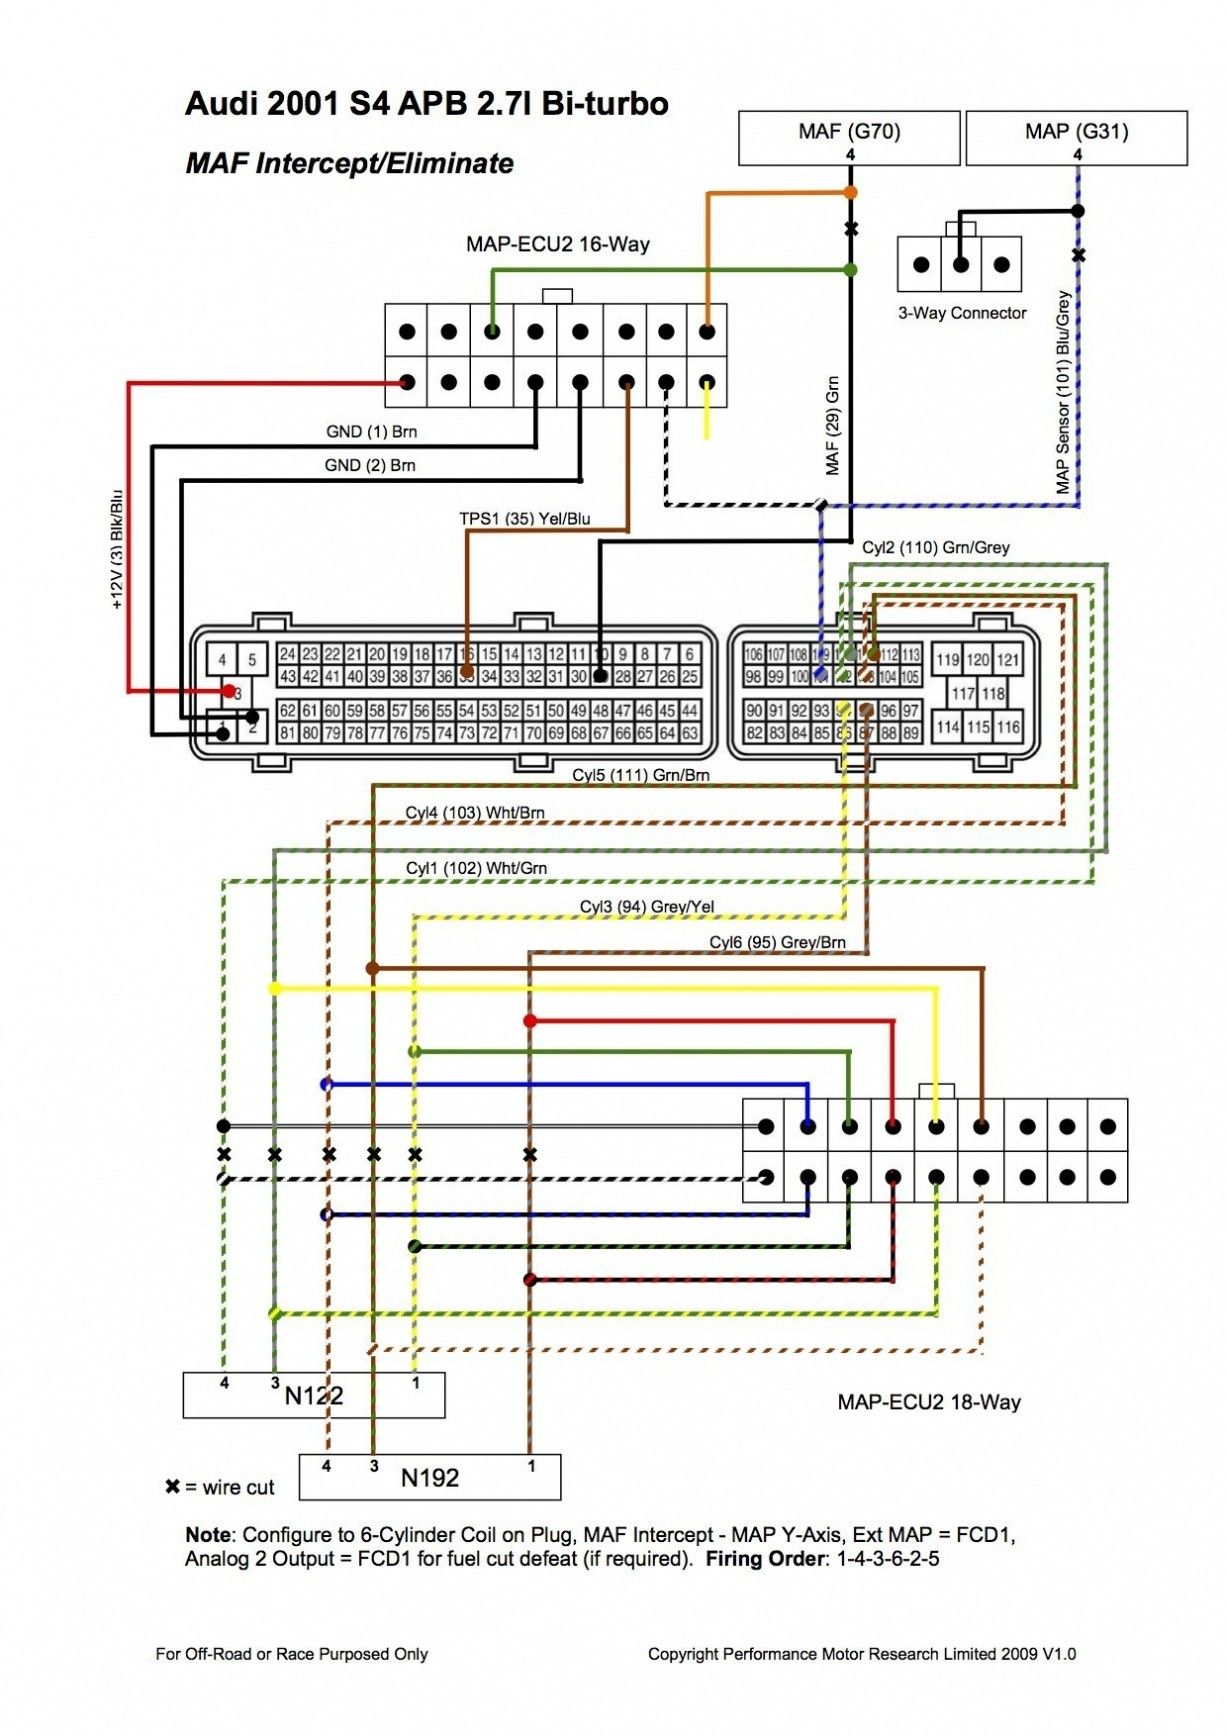 1998 Audi A4 Wiring Diagram - Acme Transformer Wiring Diagrams Single Get  Free Image About - piooner-radios.yenpancane.jeanjaures37.fr | Audi A4 Wiring Diagram 1998 |  | Wiring Diagram Resource